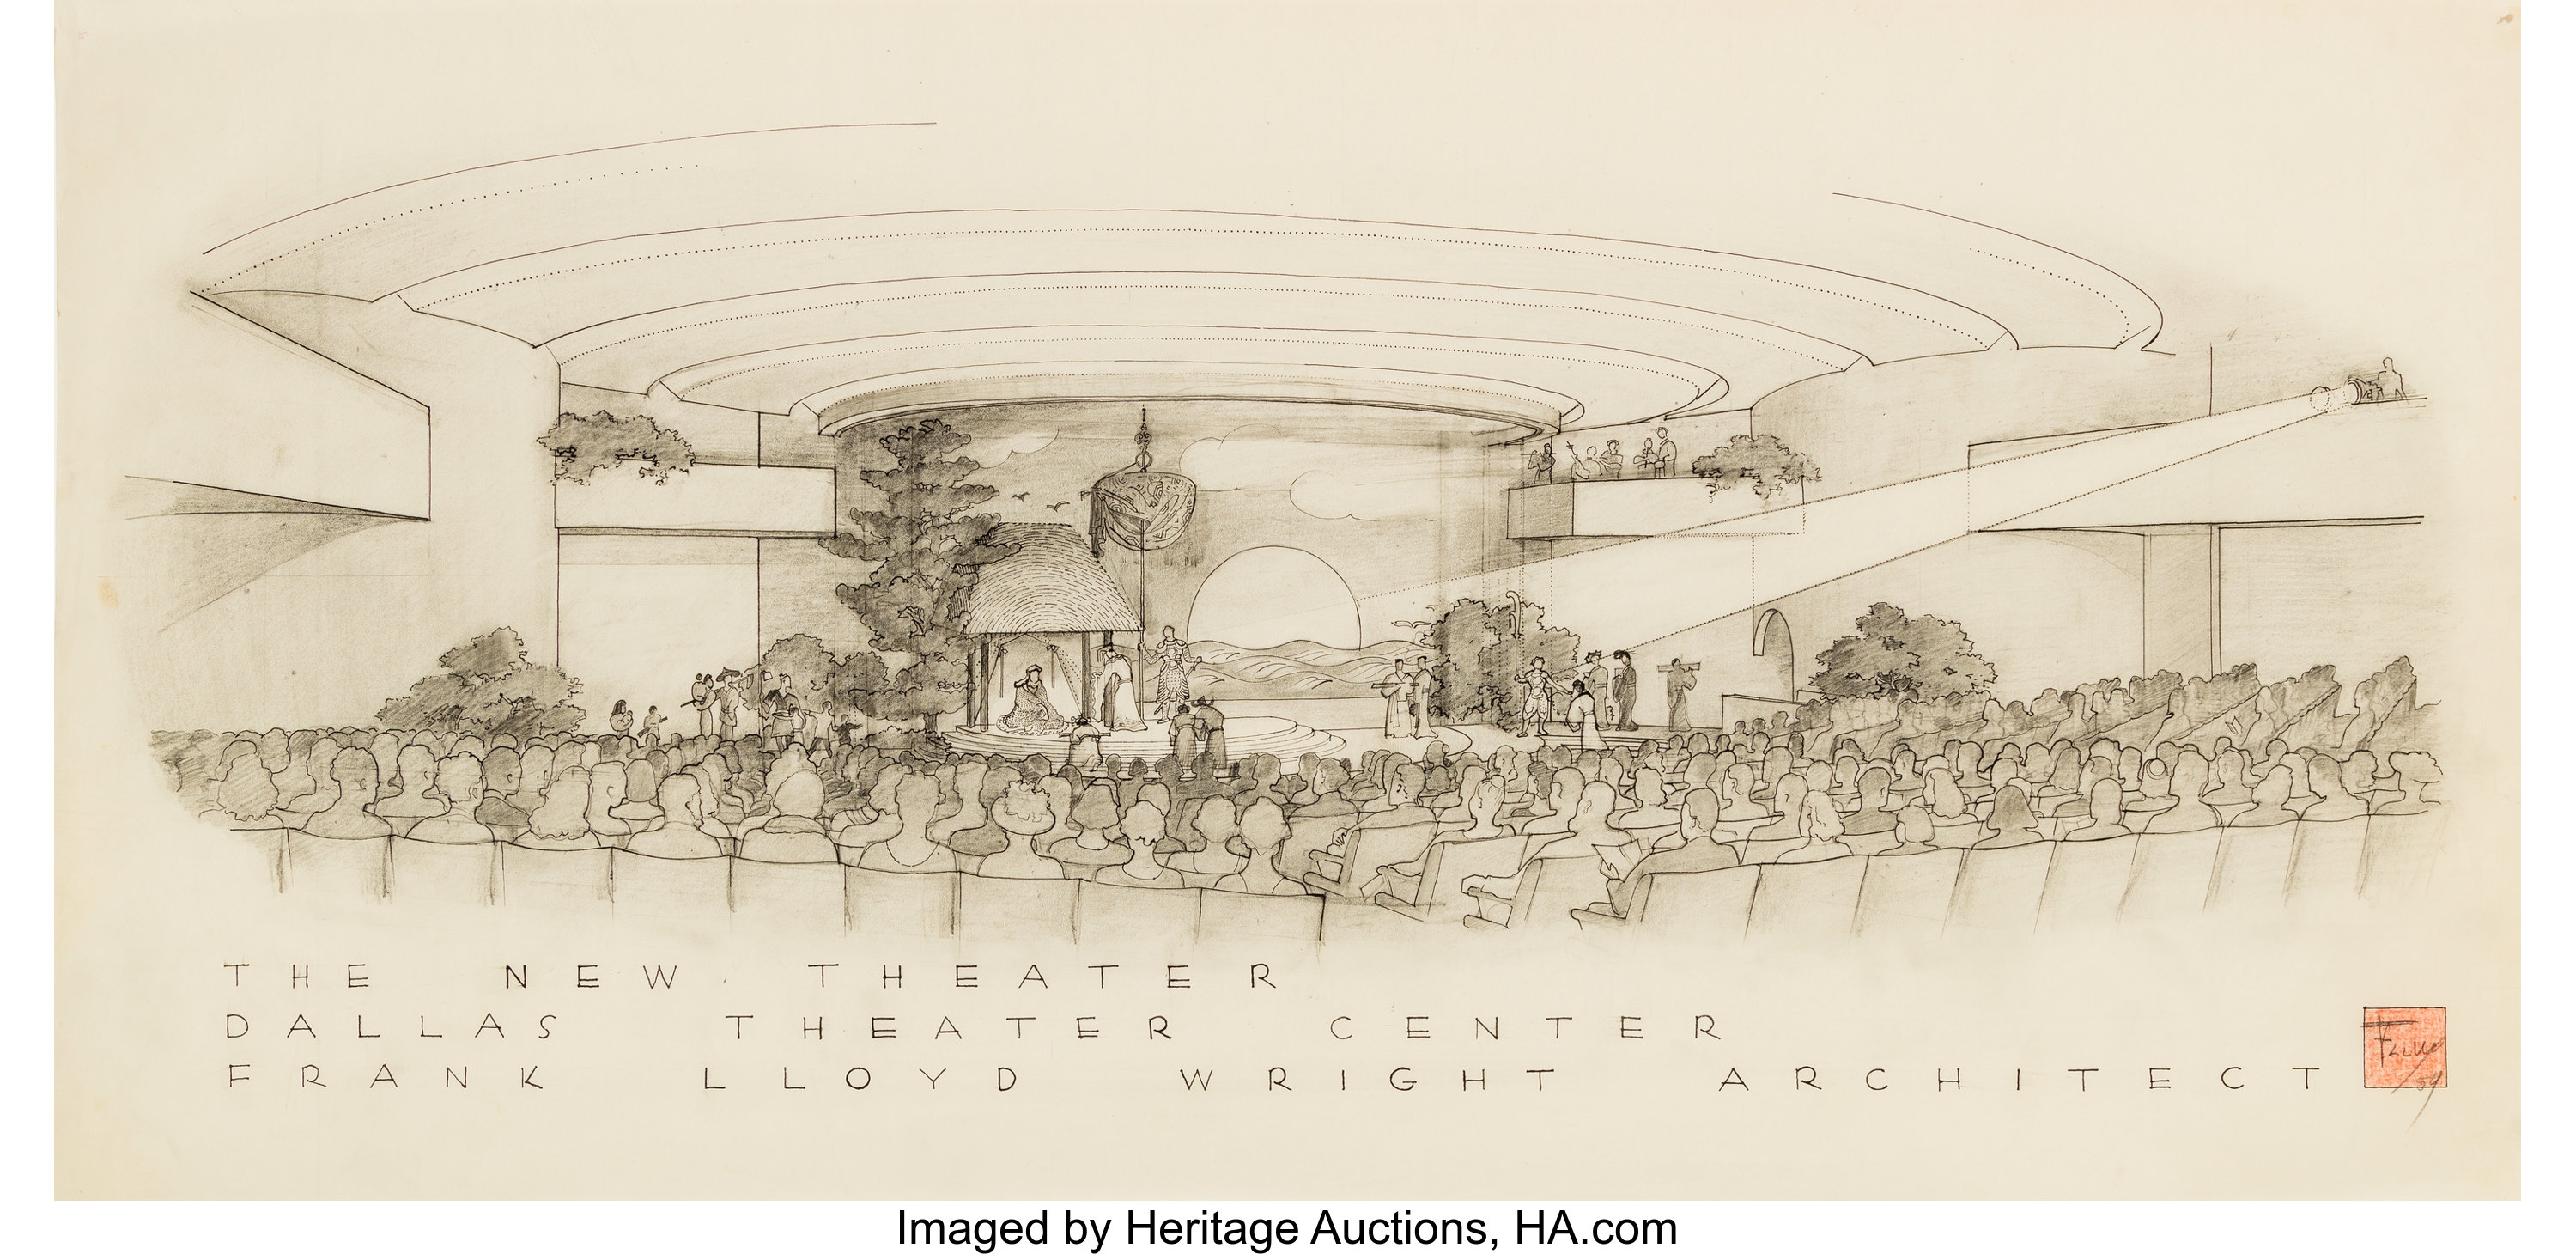 Frank lloyd wright american 1867 1959 presentation drawings of lot 67114 heritage auctions